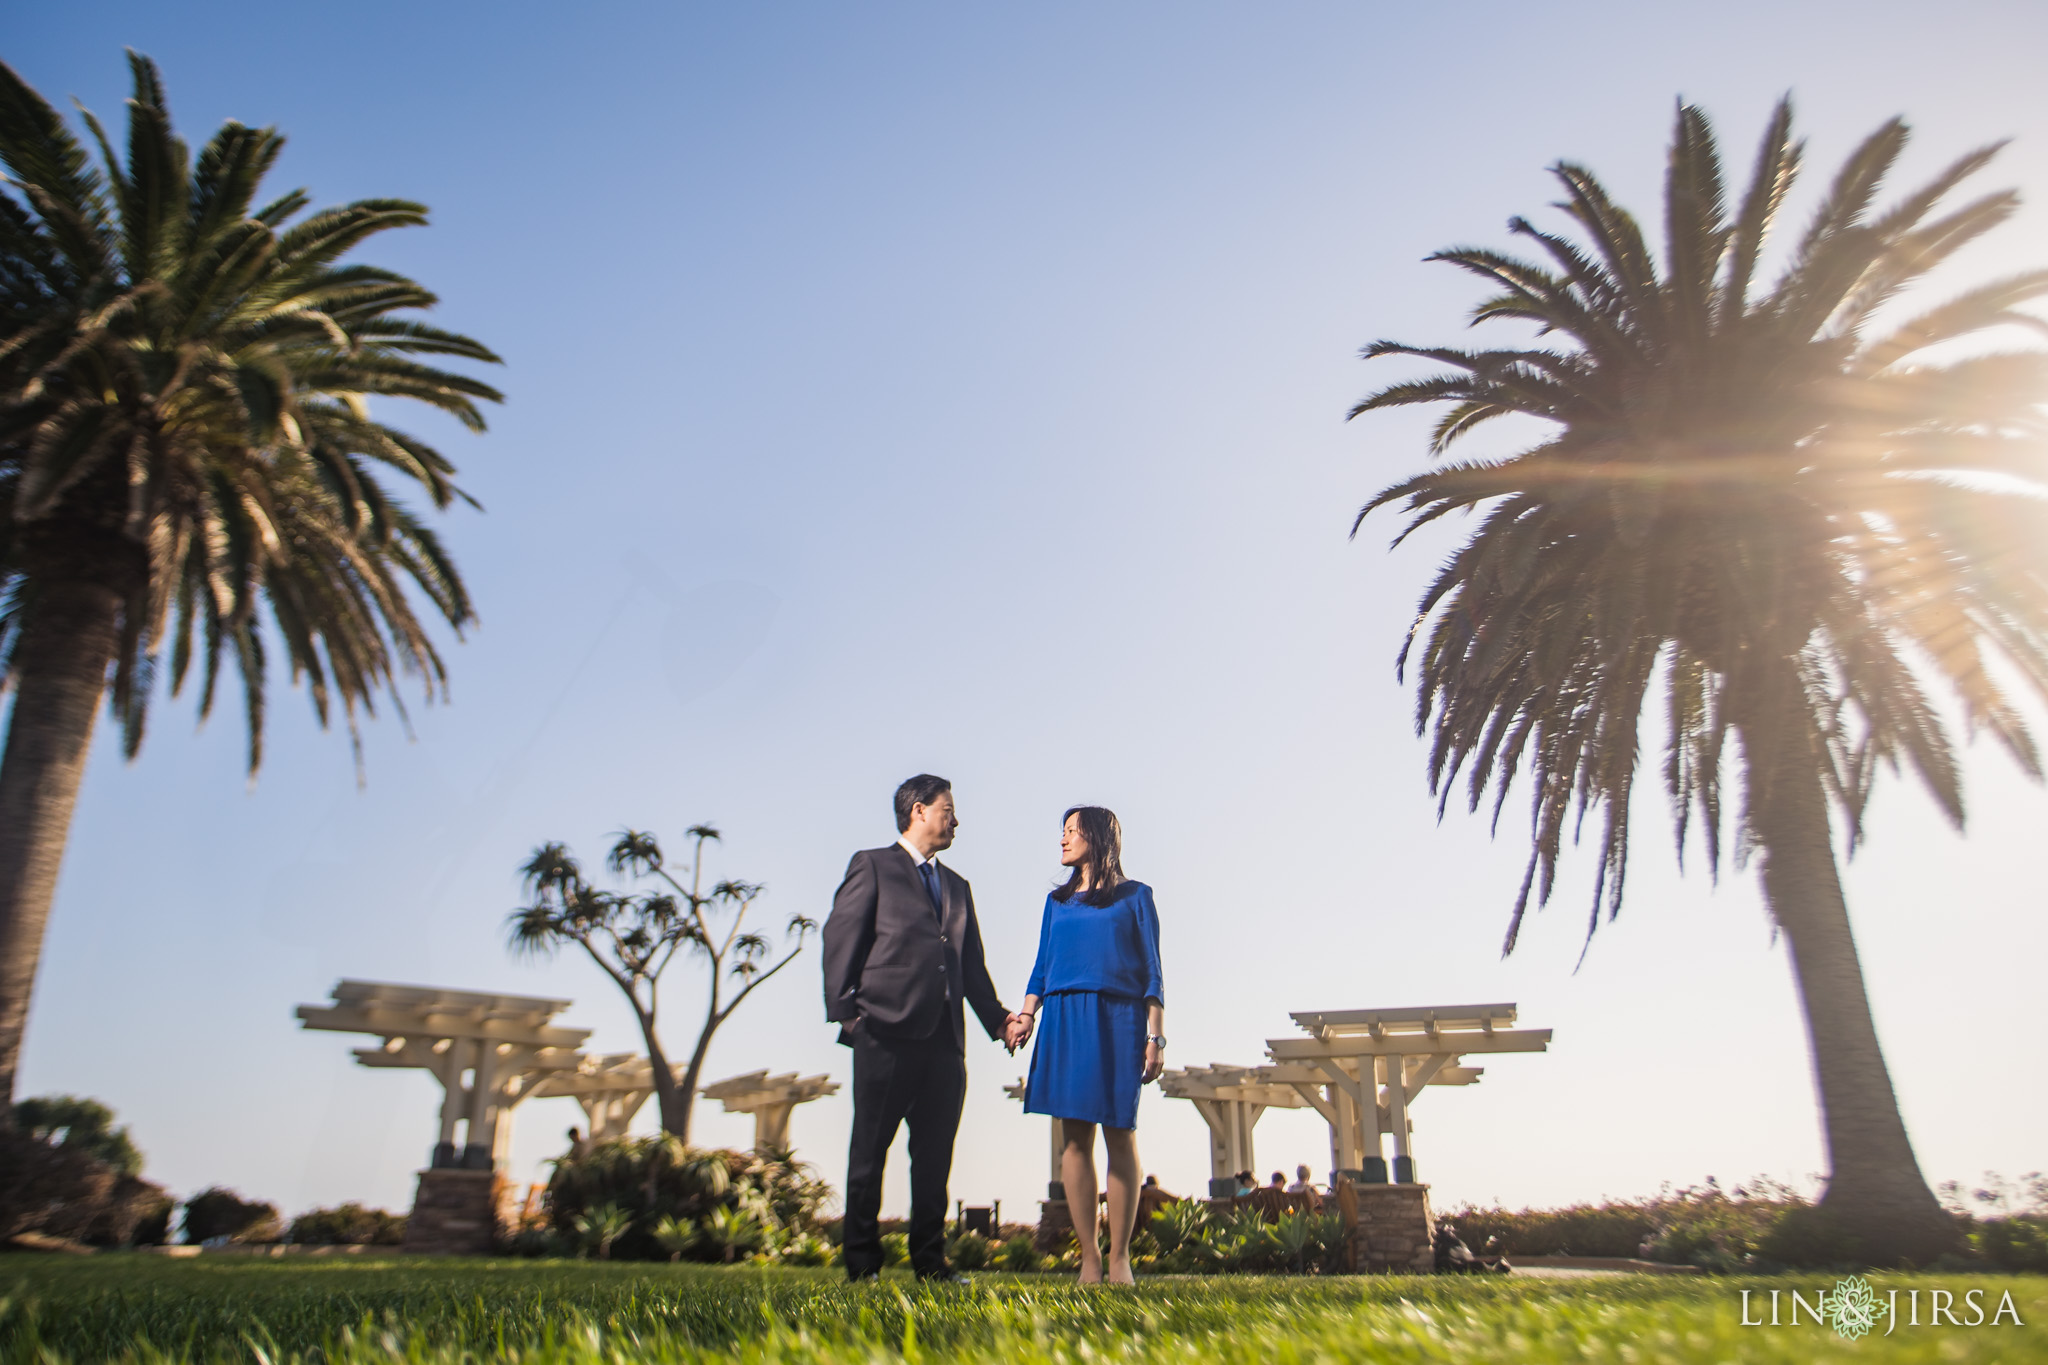 zjg Treasure Island Park Laguna Beach Engagement Photography